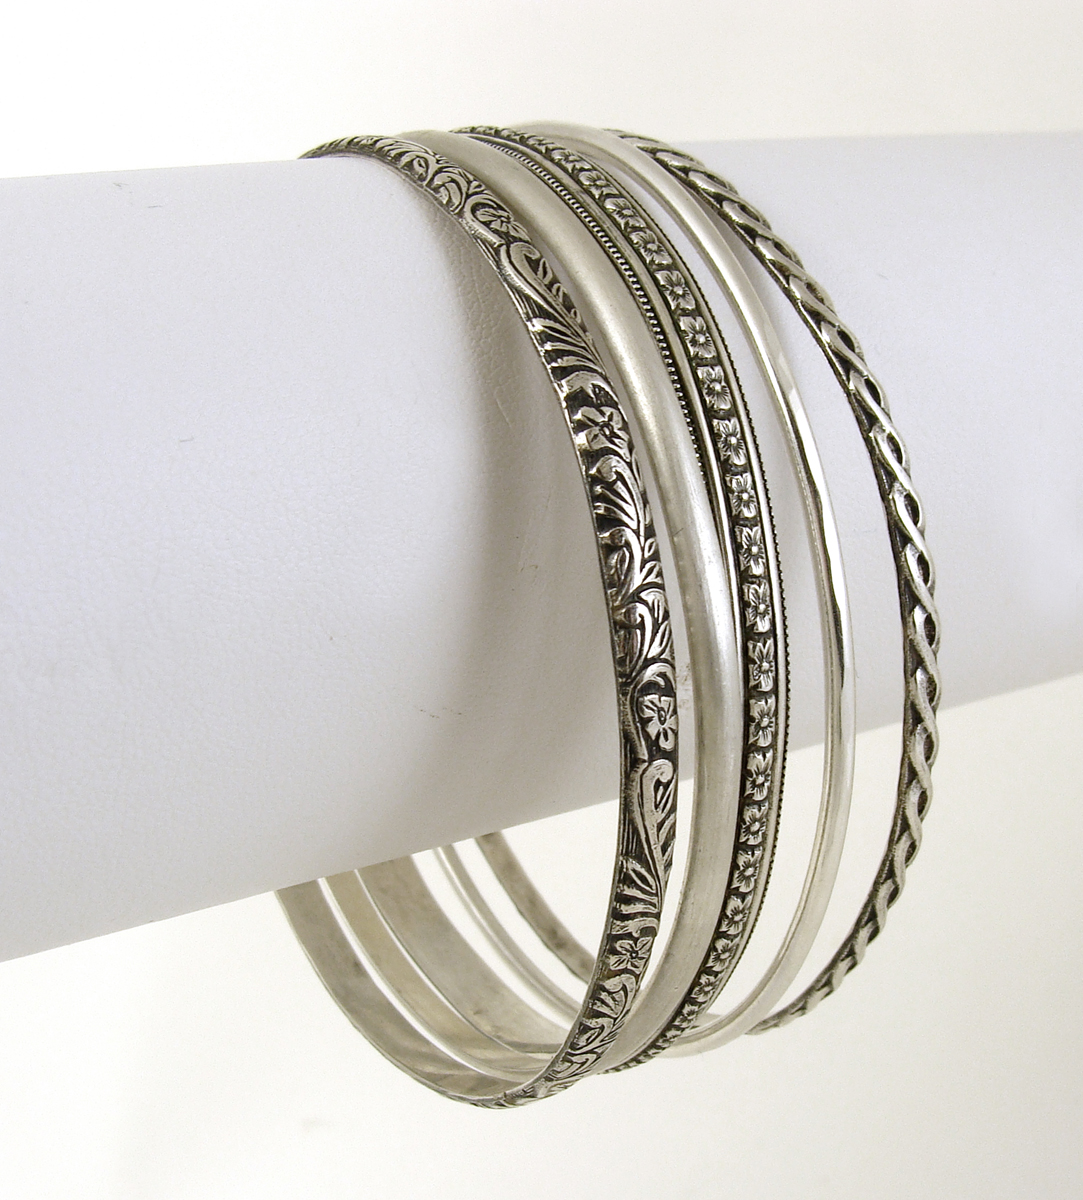 variety of patterned sterling silver bangles